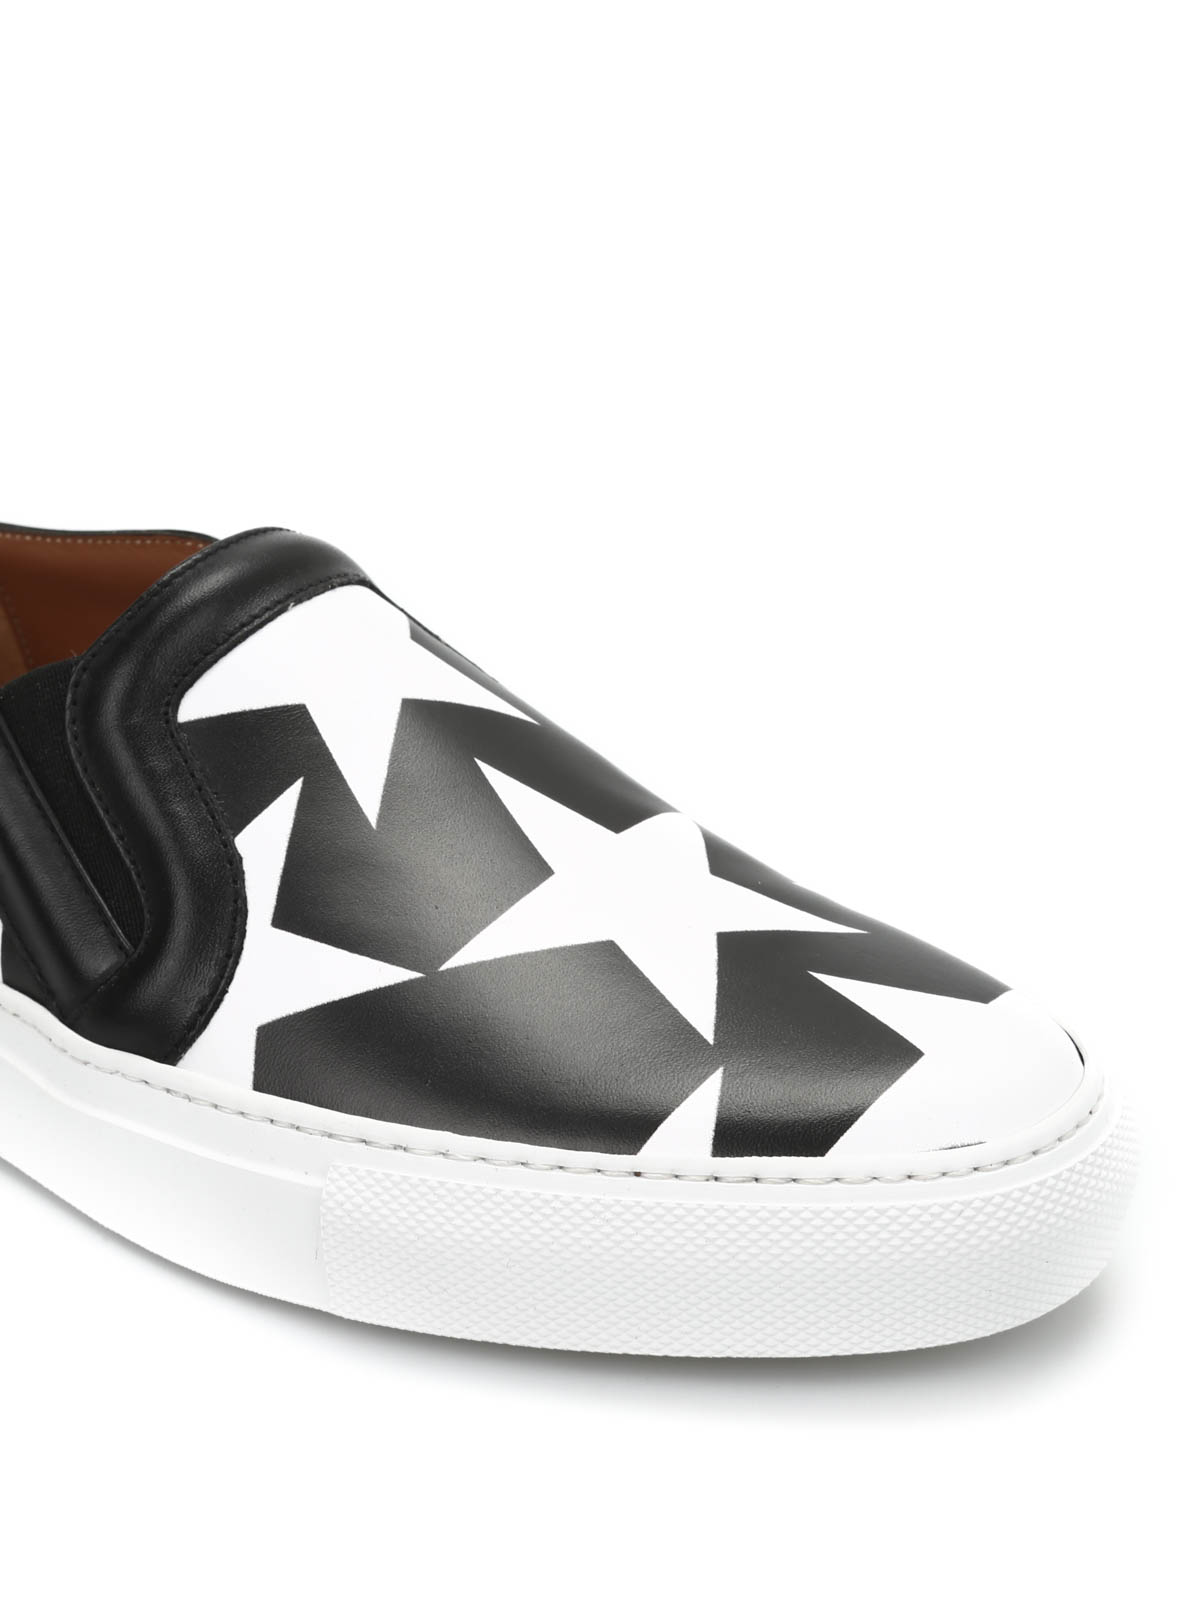 724c156ce78 Givenchy - Skate star low slip-ons - Loafers   Slippers - BE08955109004